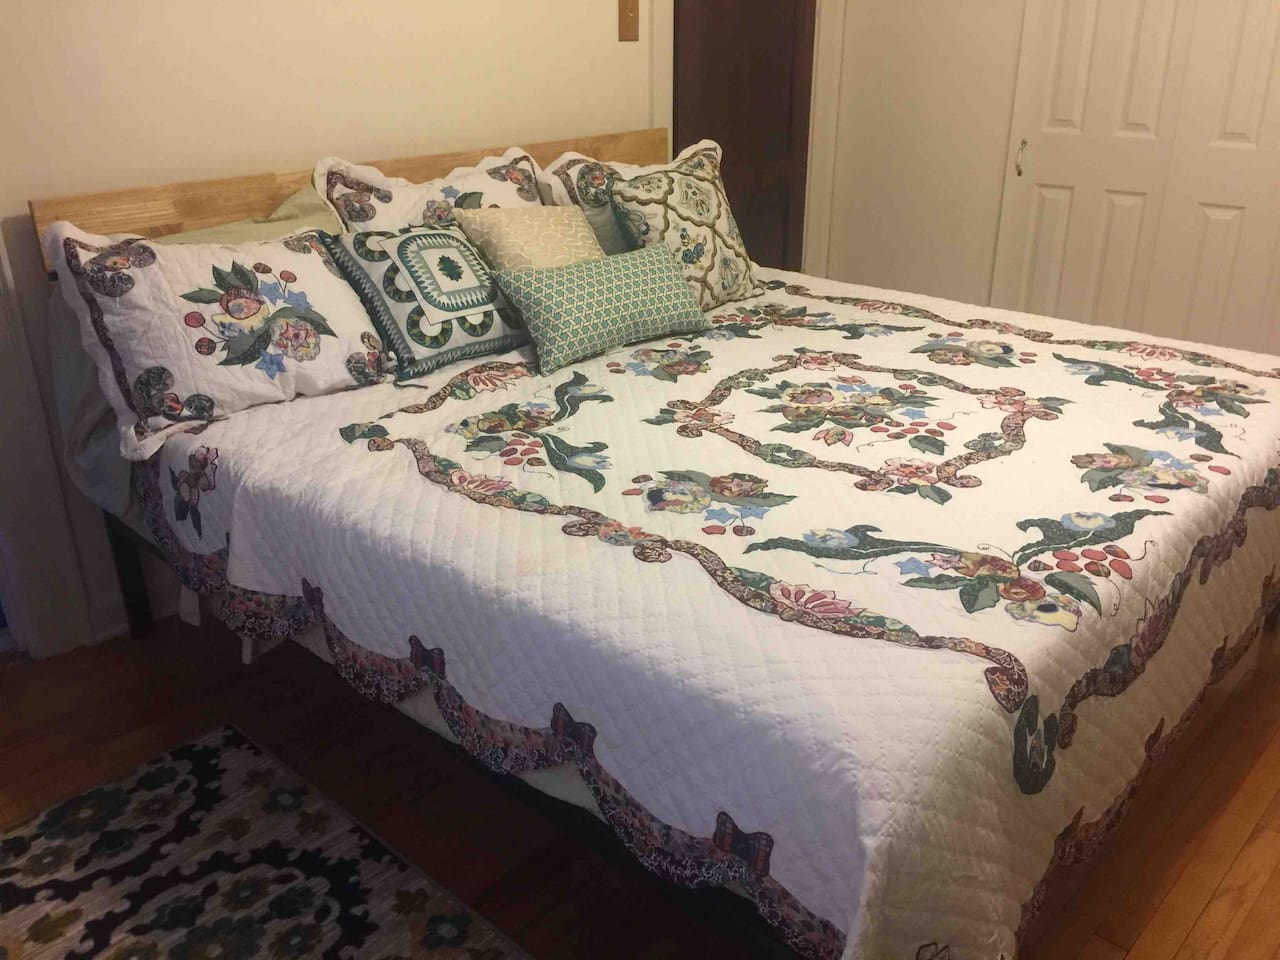 Plenty of room to relax in your king size bed, loaded with fluffy pillows and warm layers of blankets topped off with a homey quilt.